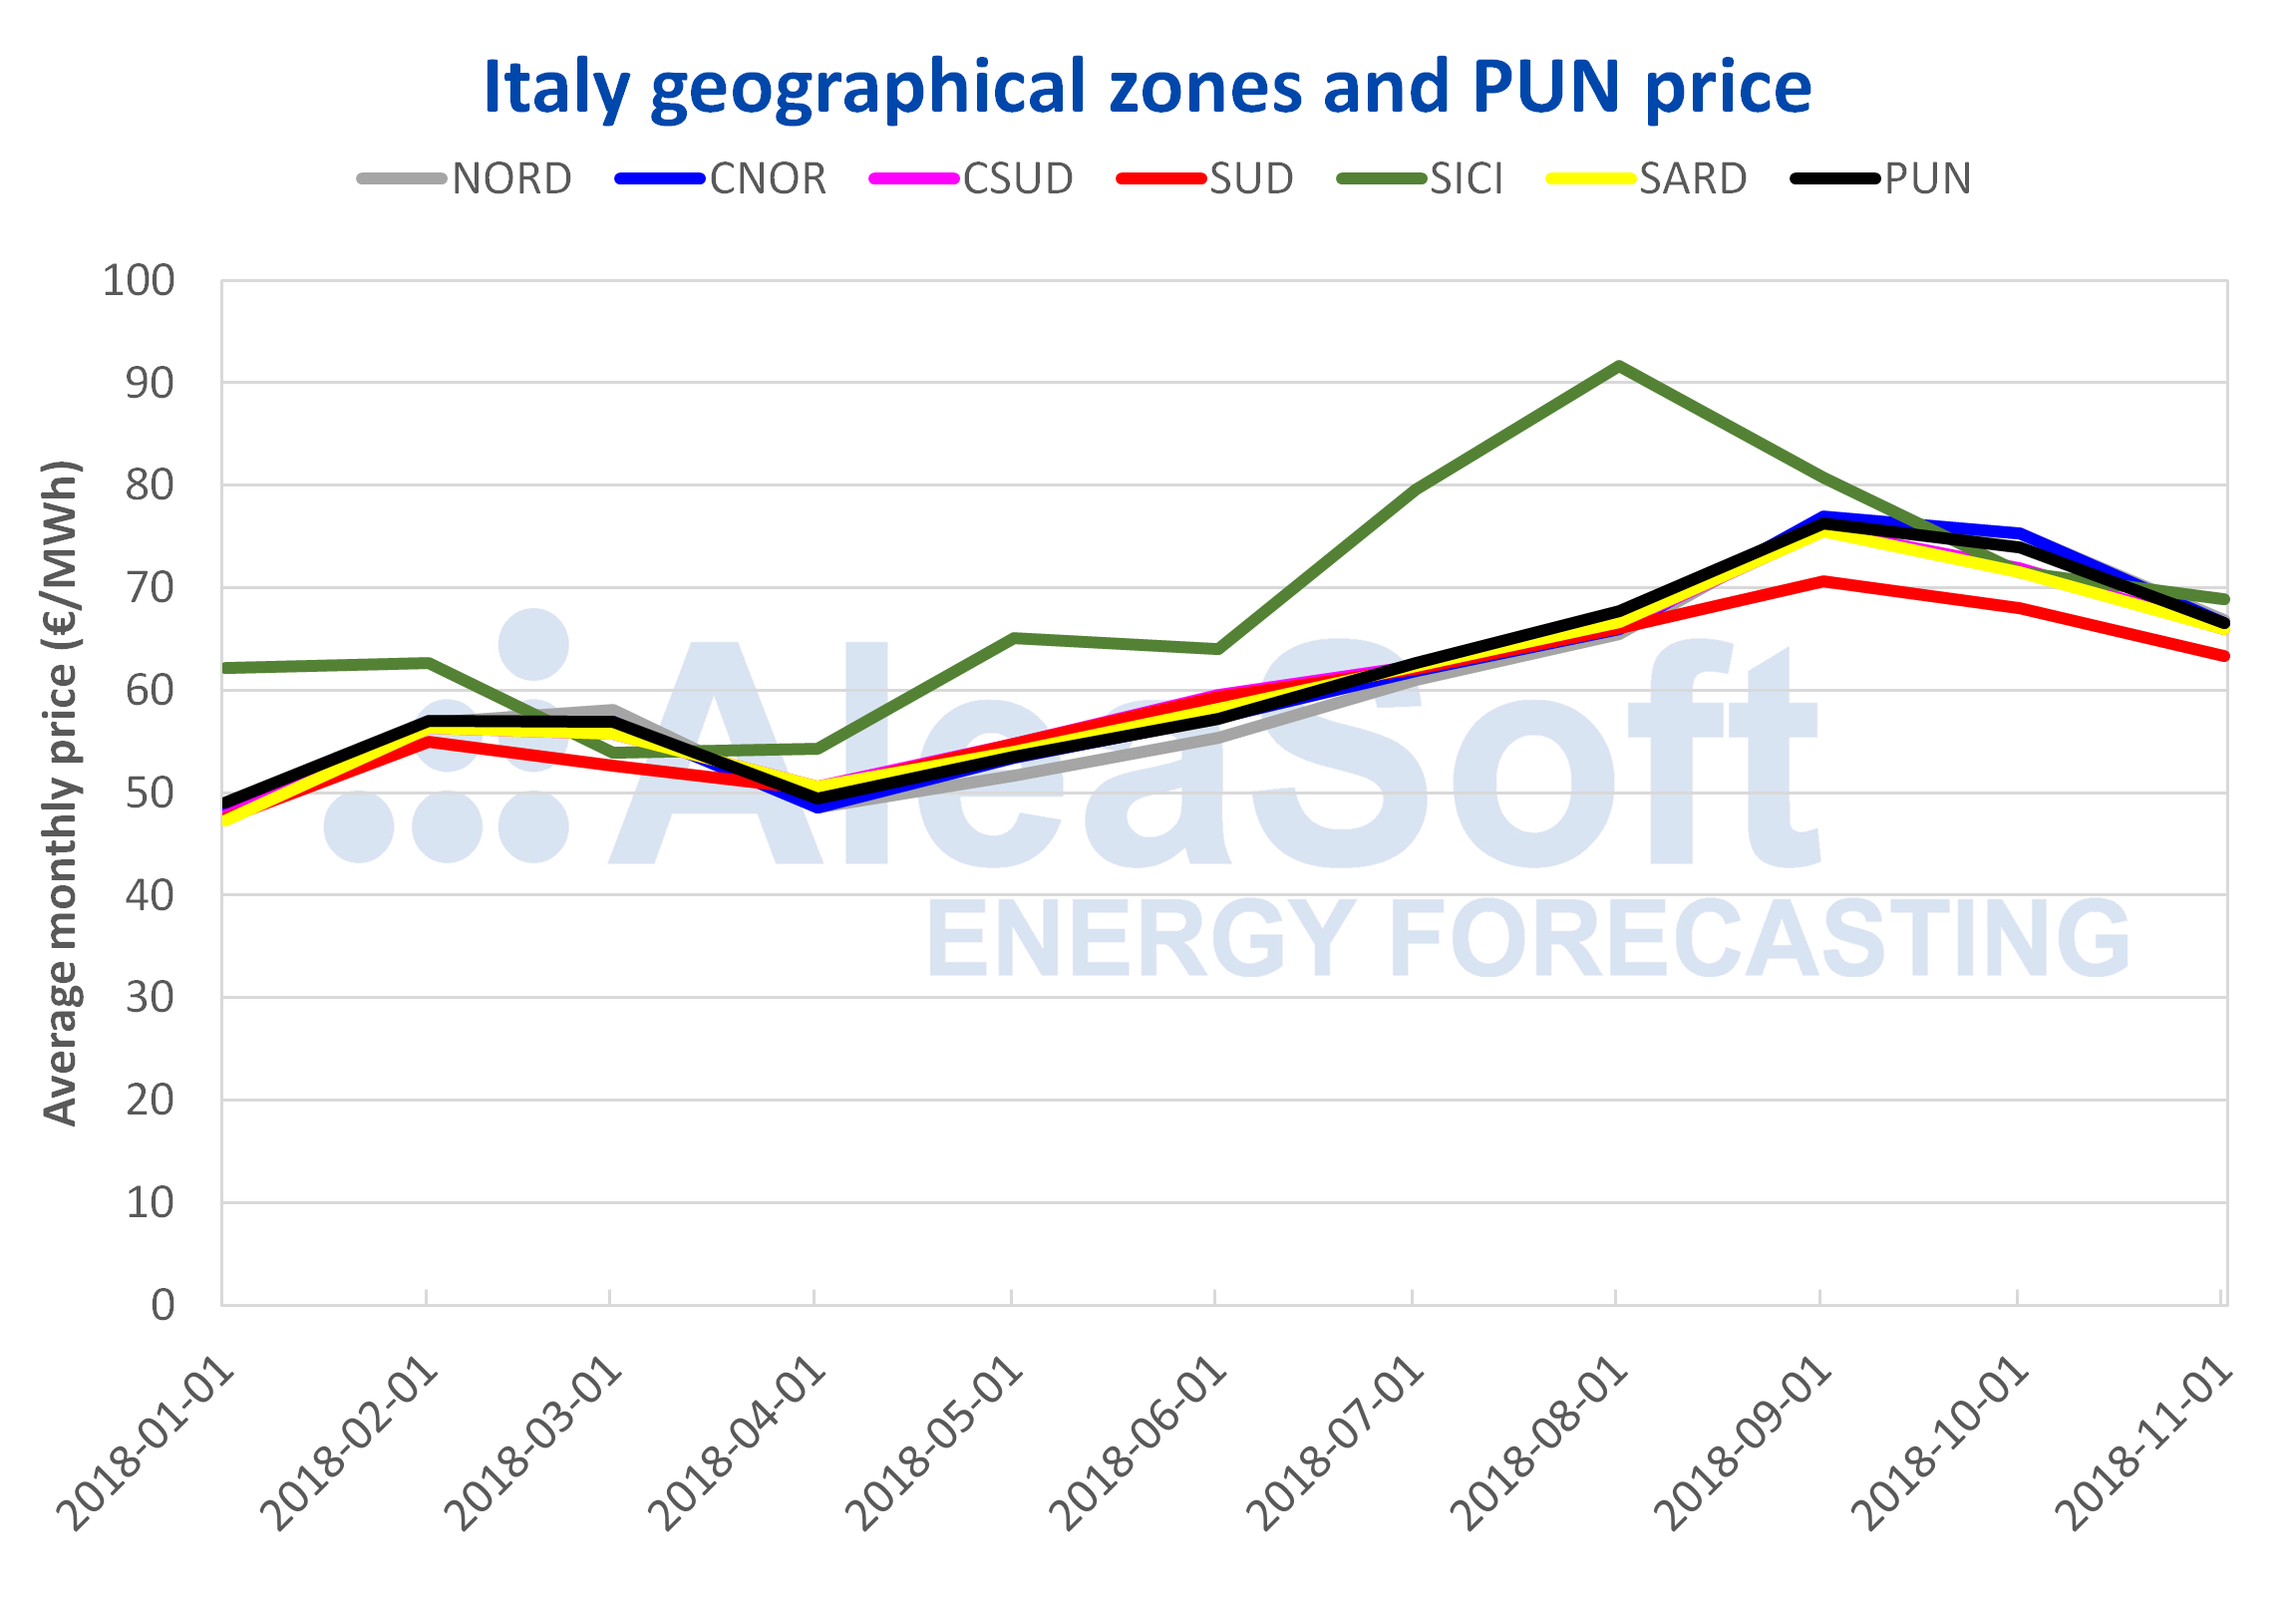 AleaSoft - Italy geographical zones and PUN price